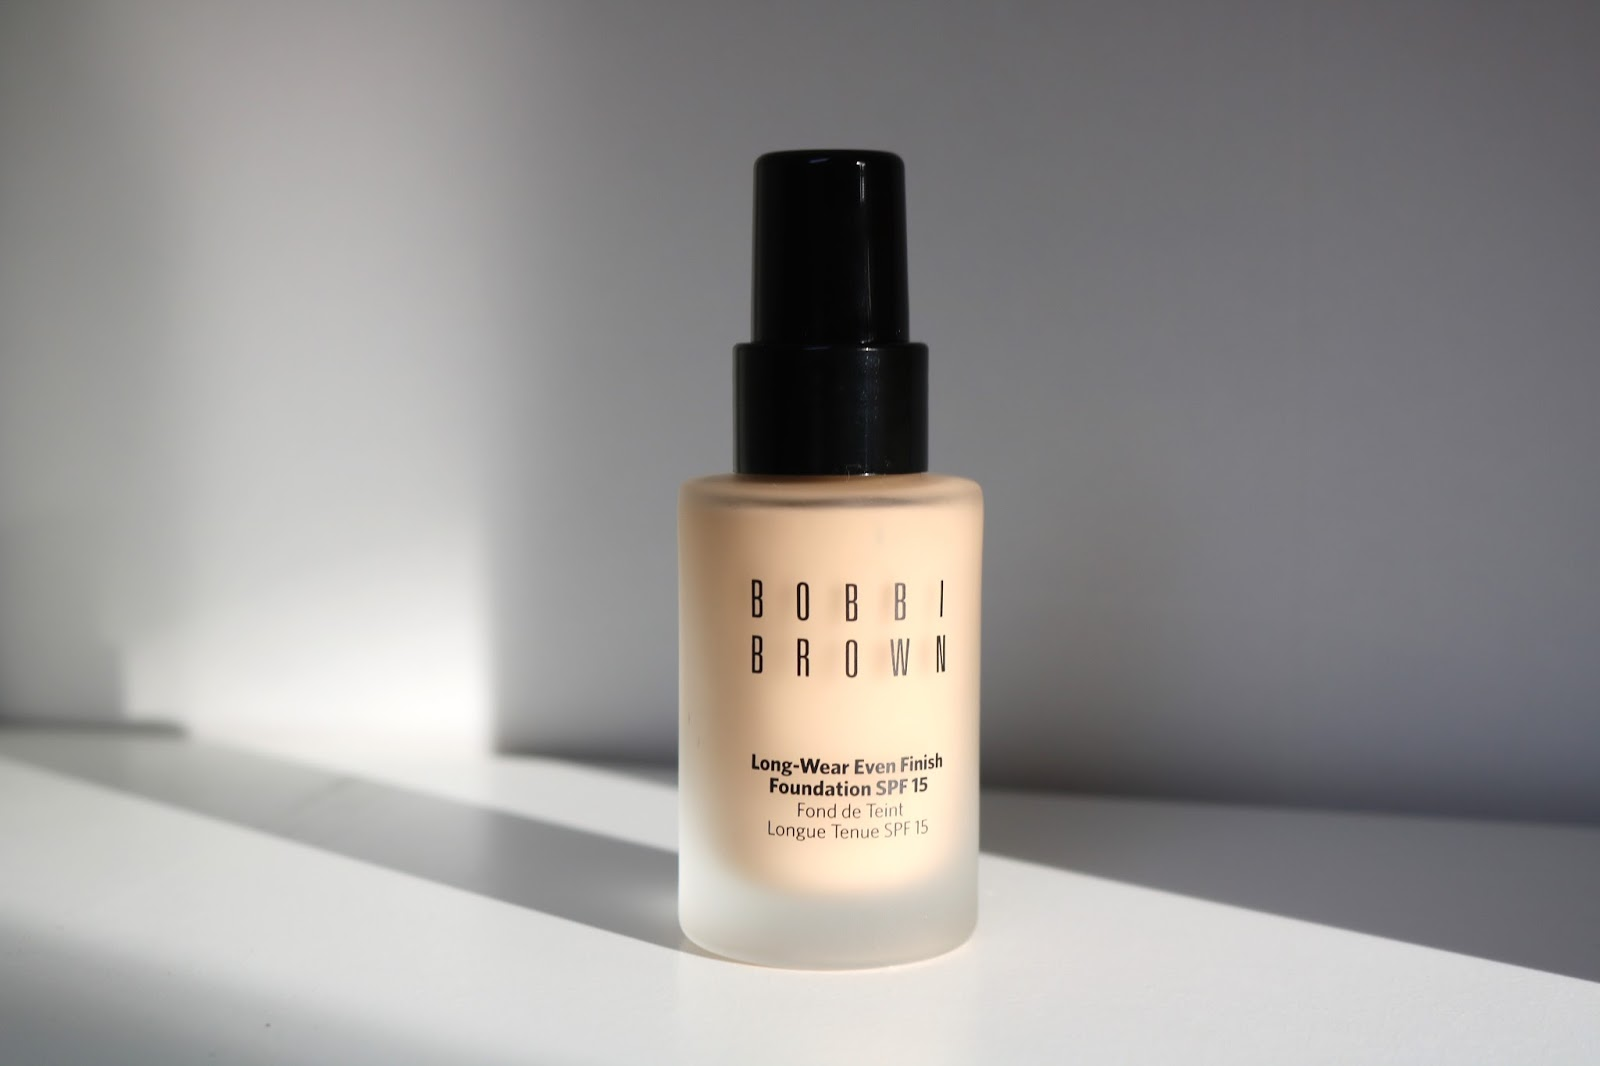 Review | Bobbi brown Long-Wear Even Finish foundation SPF 15